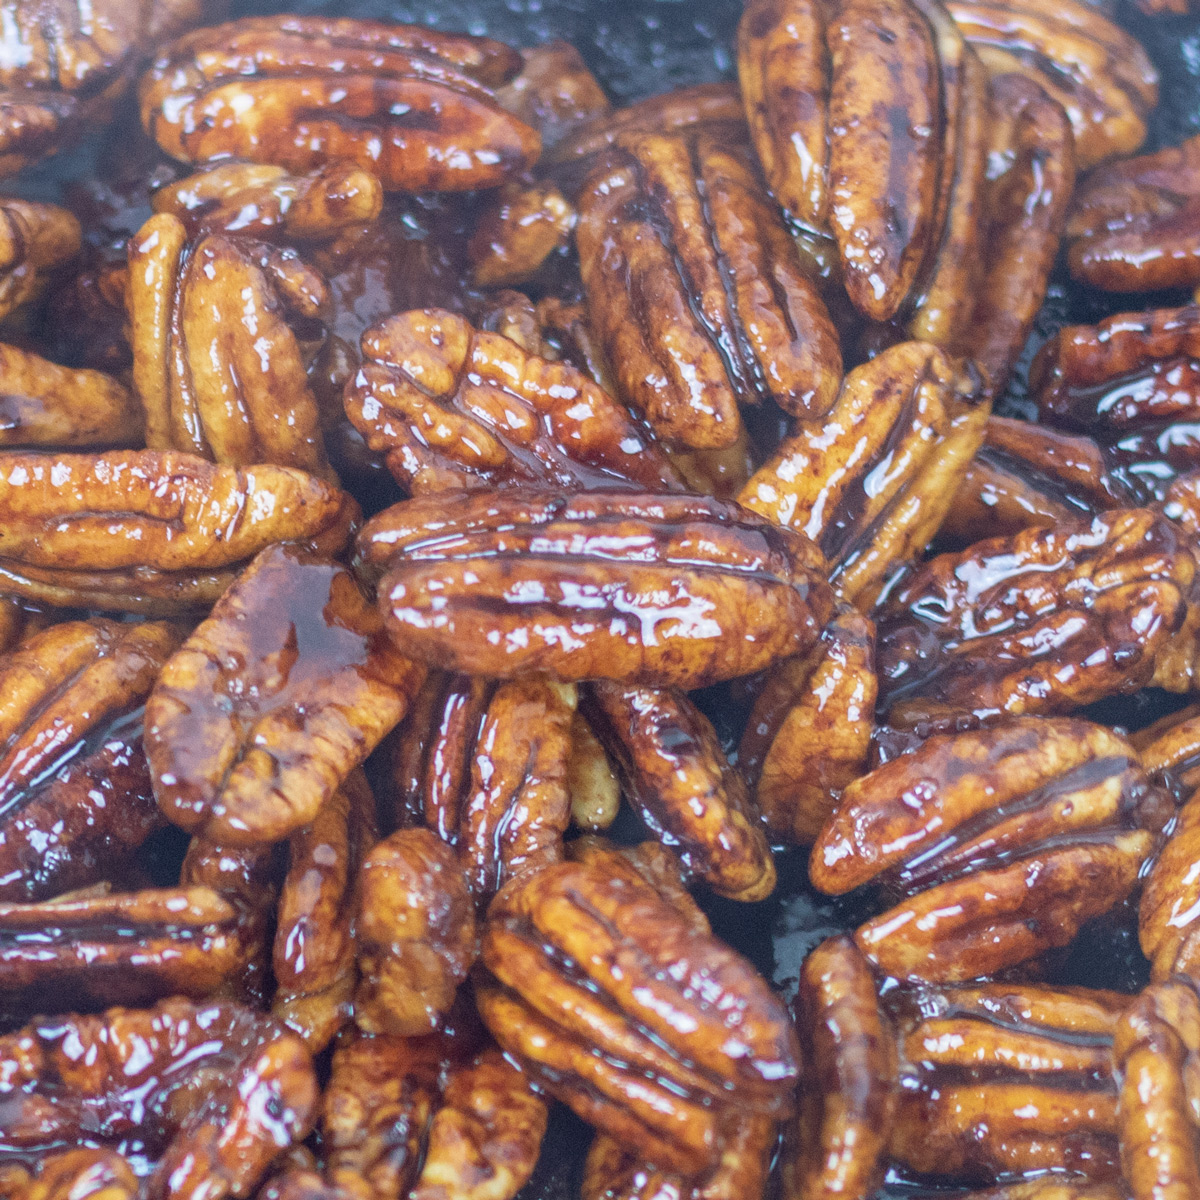 Glazed pecans with rum and cane syrup